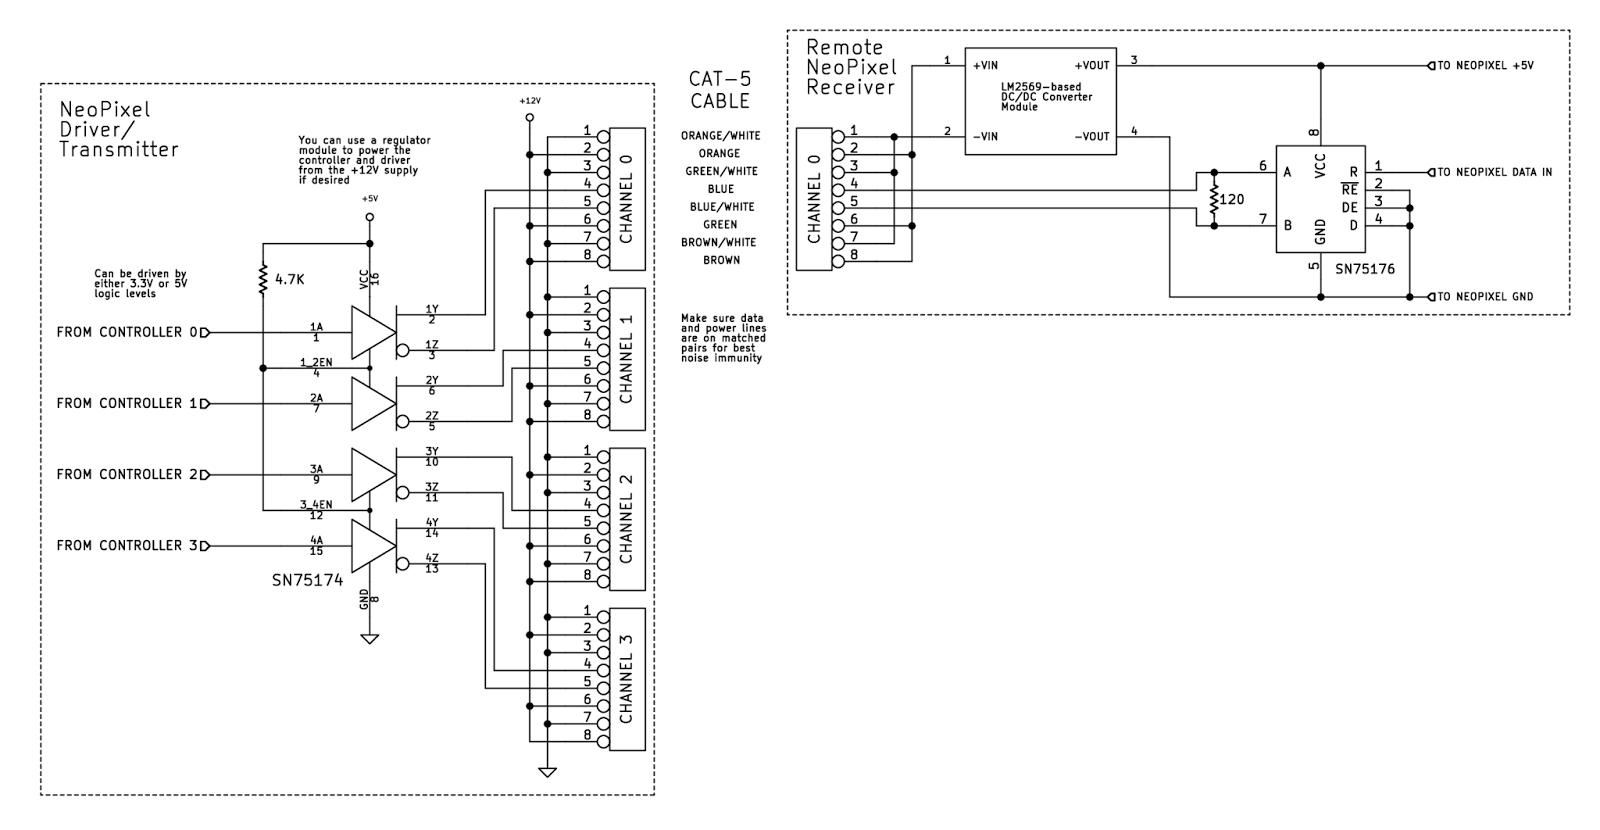 pignose guitar diagram schematic all about repair and wiring pignose guitar diagram schematic teknynja driving ws2812neopixels rgb leds over cat5 ethernet cable rgb cat5